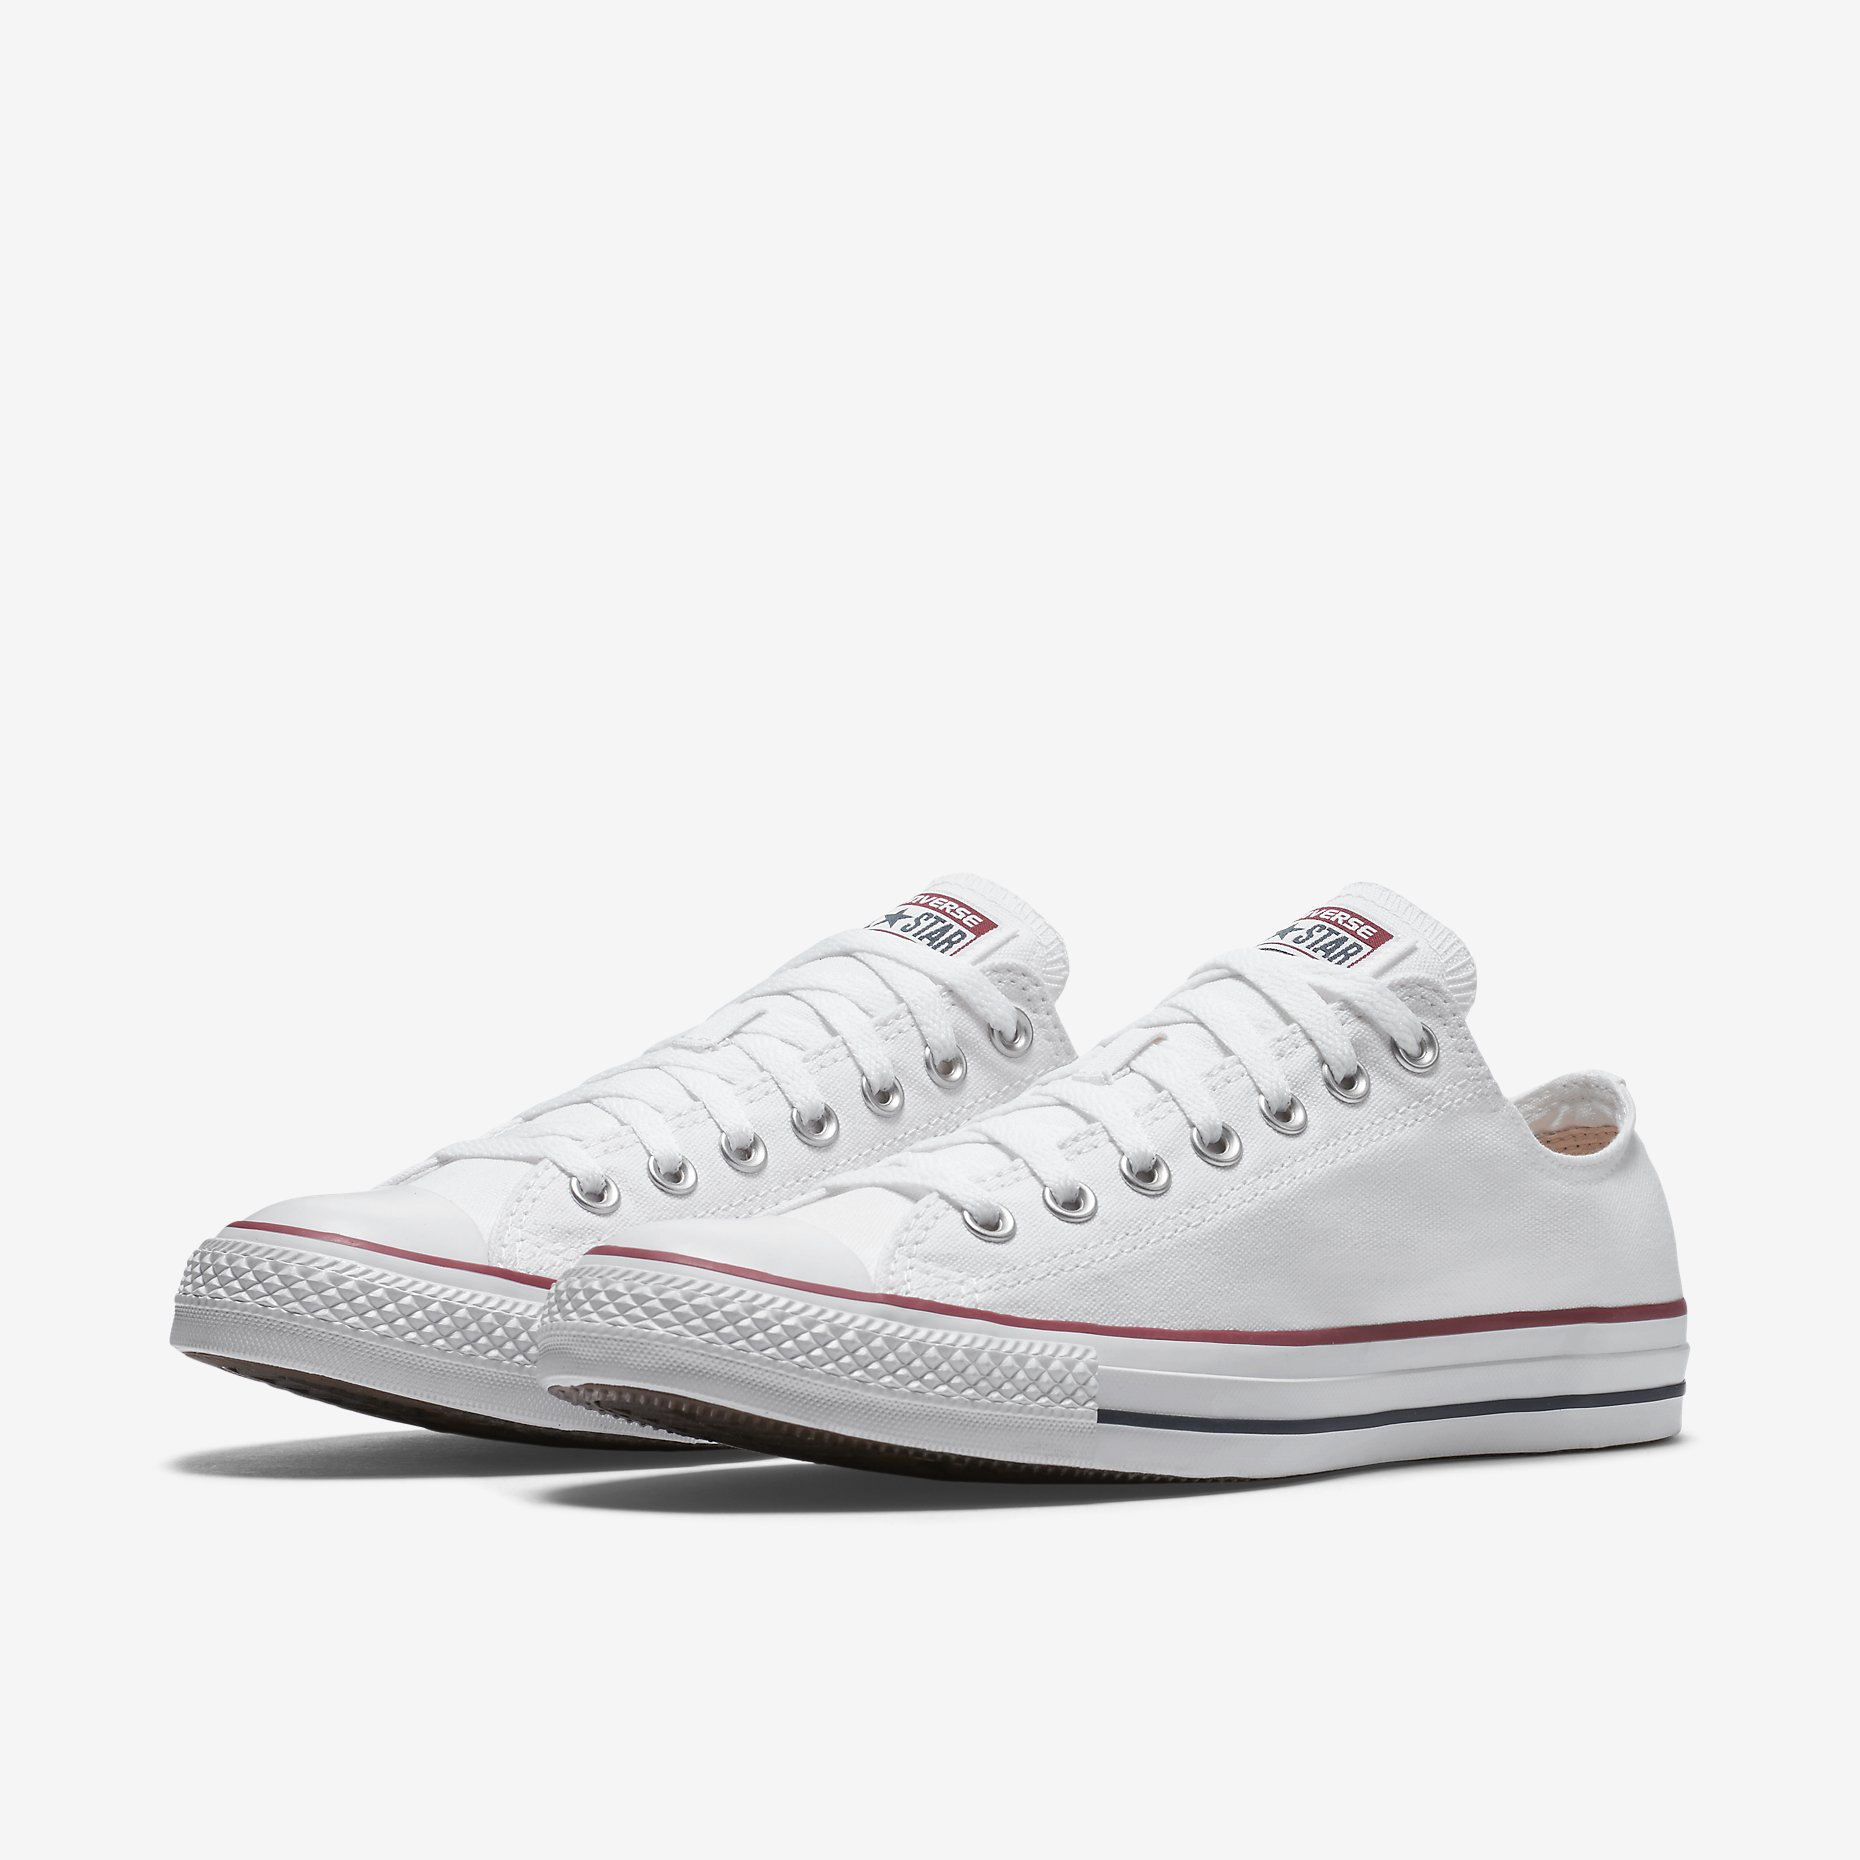 Converse Chuck Taylor All Star Low Top White - Spinners Sports 12da2d82a6b7